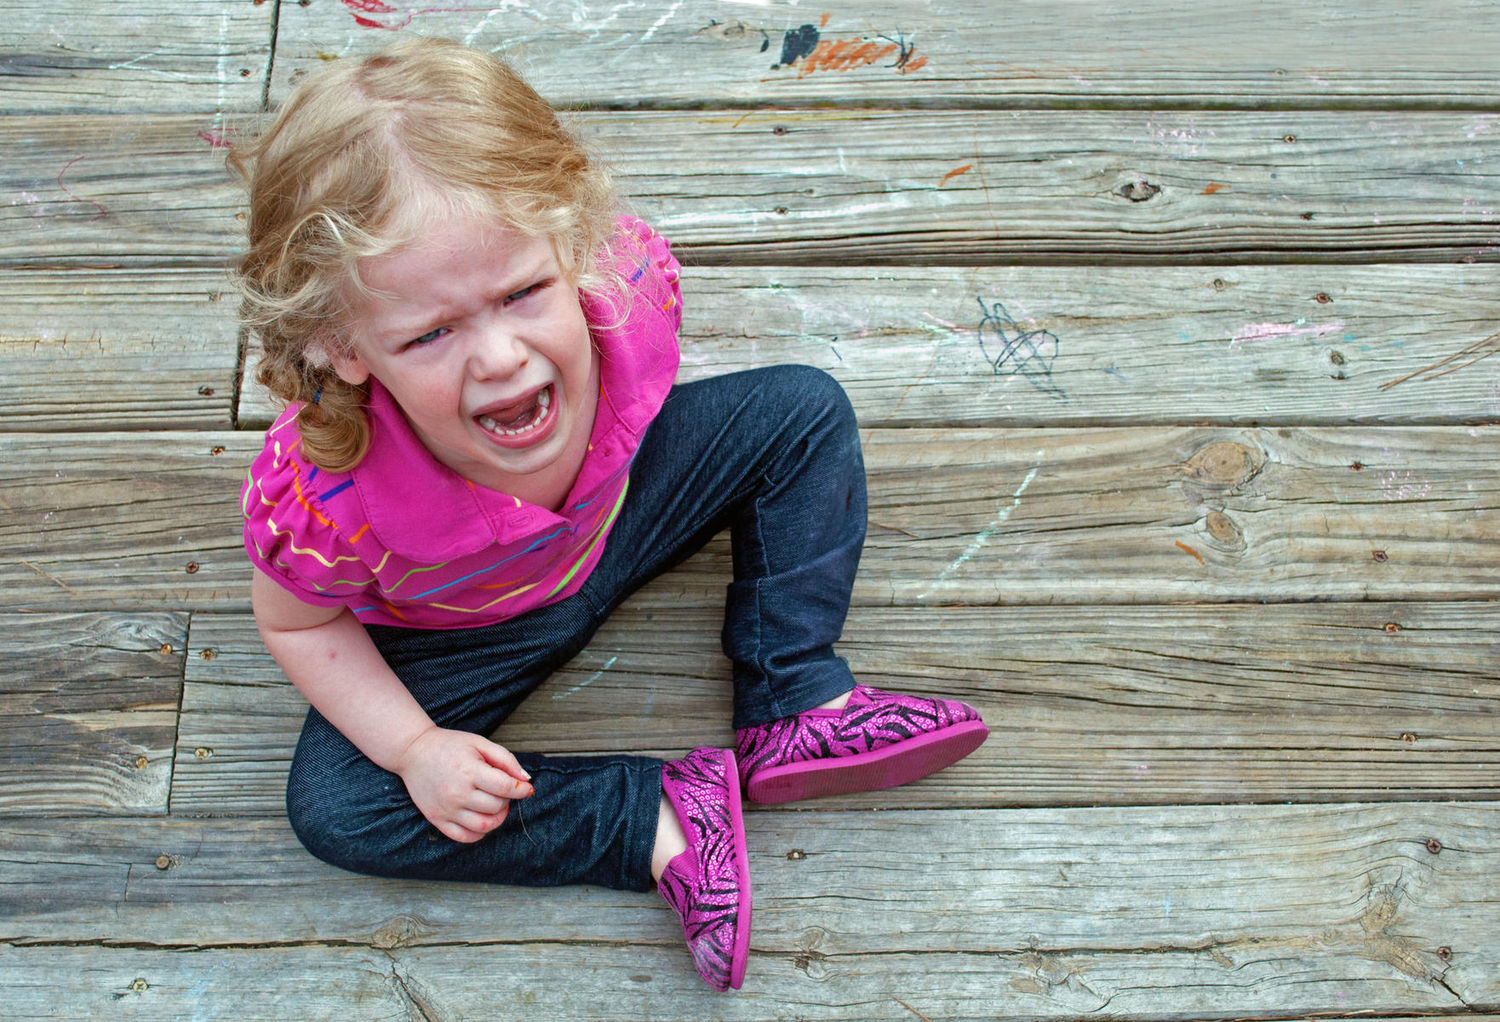 the characteristics of temper tantrums in toddlers